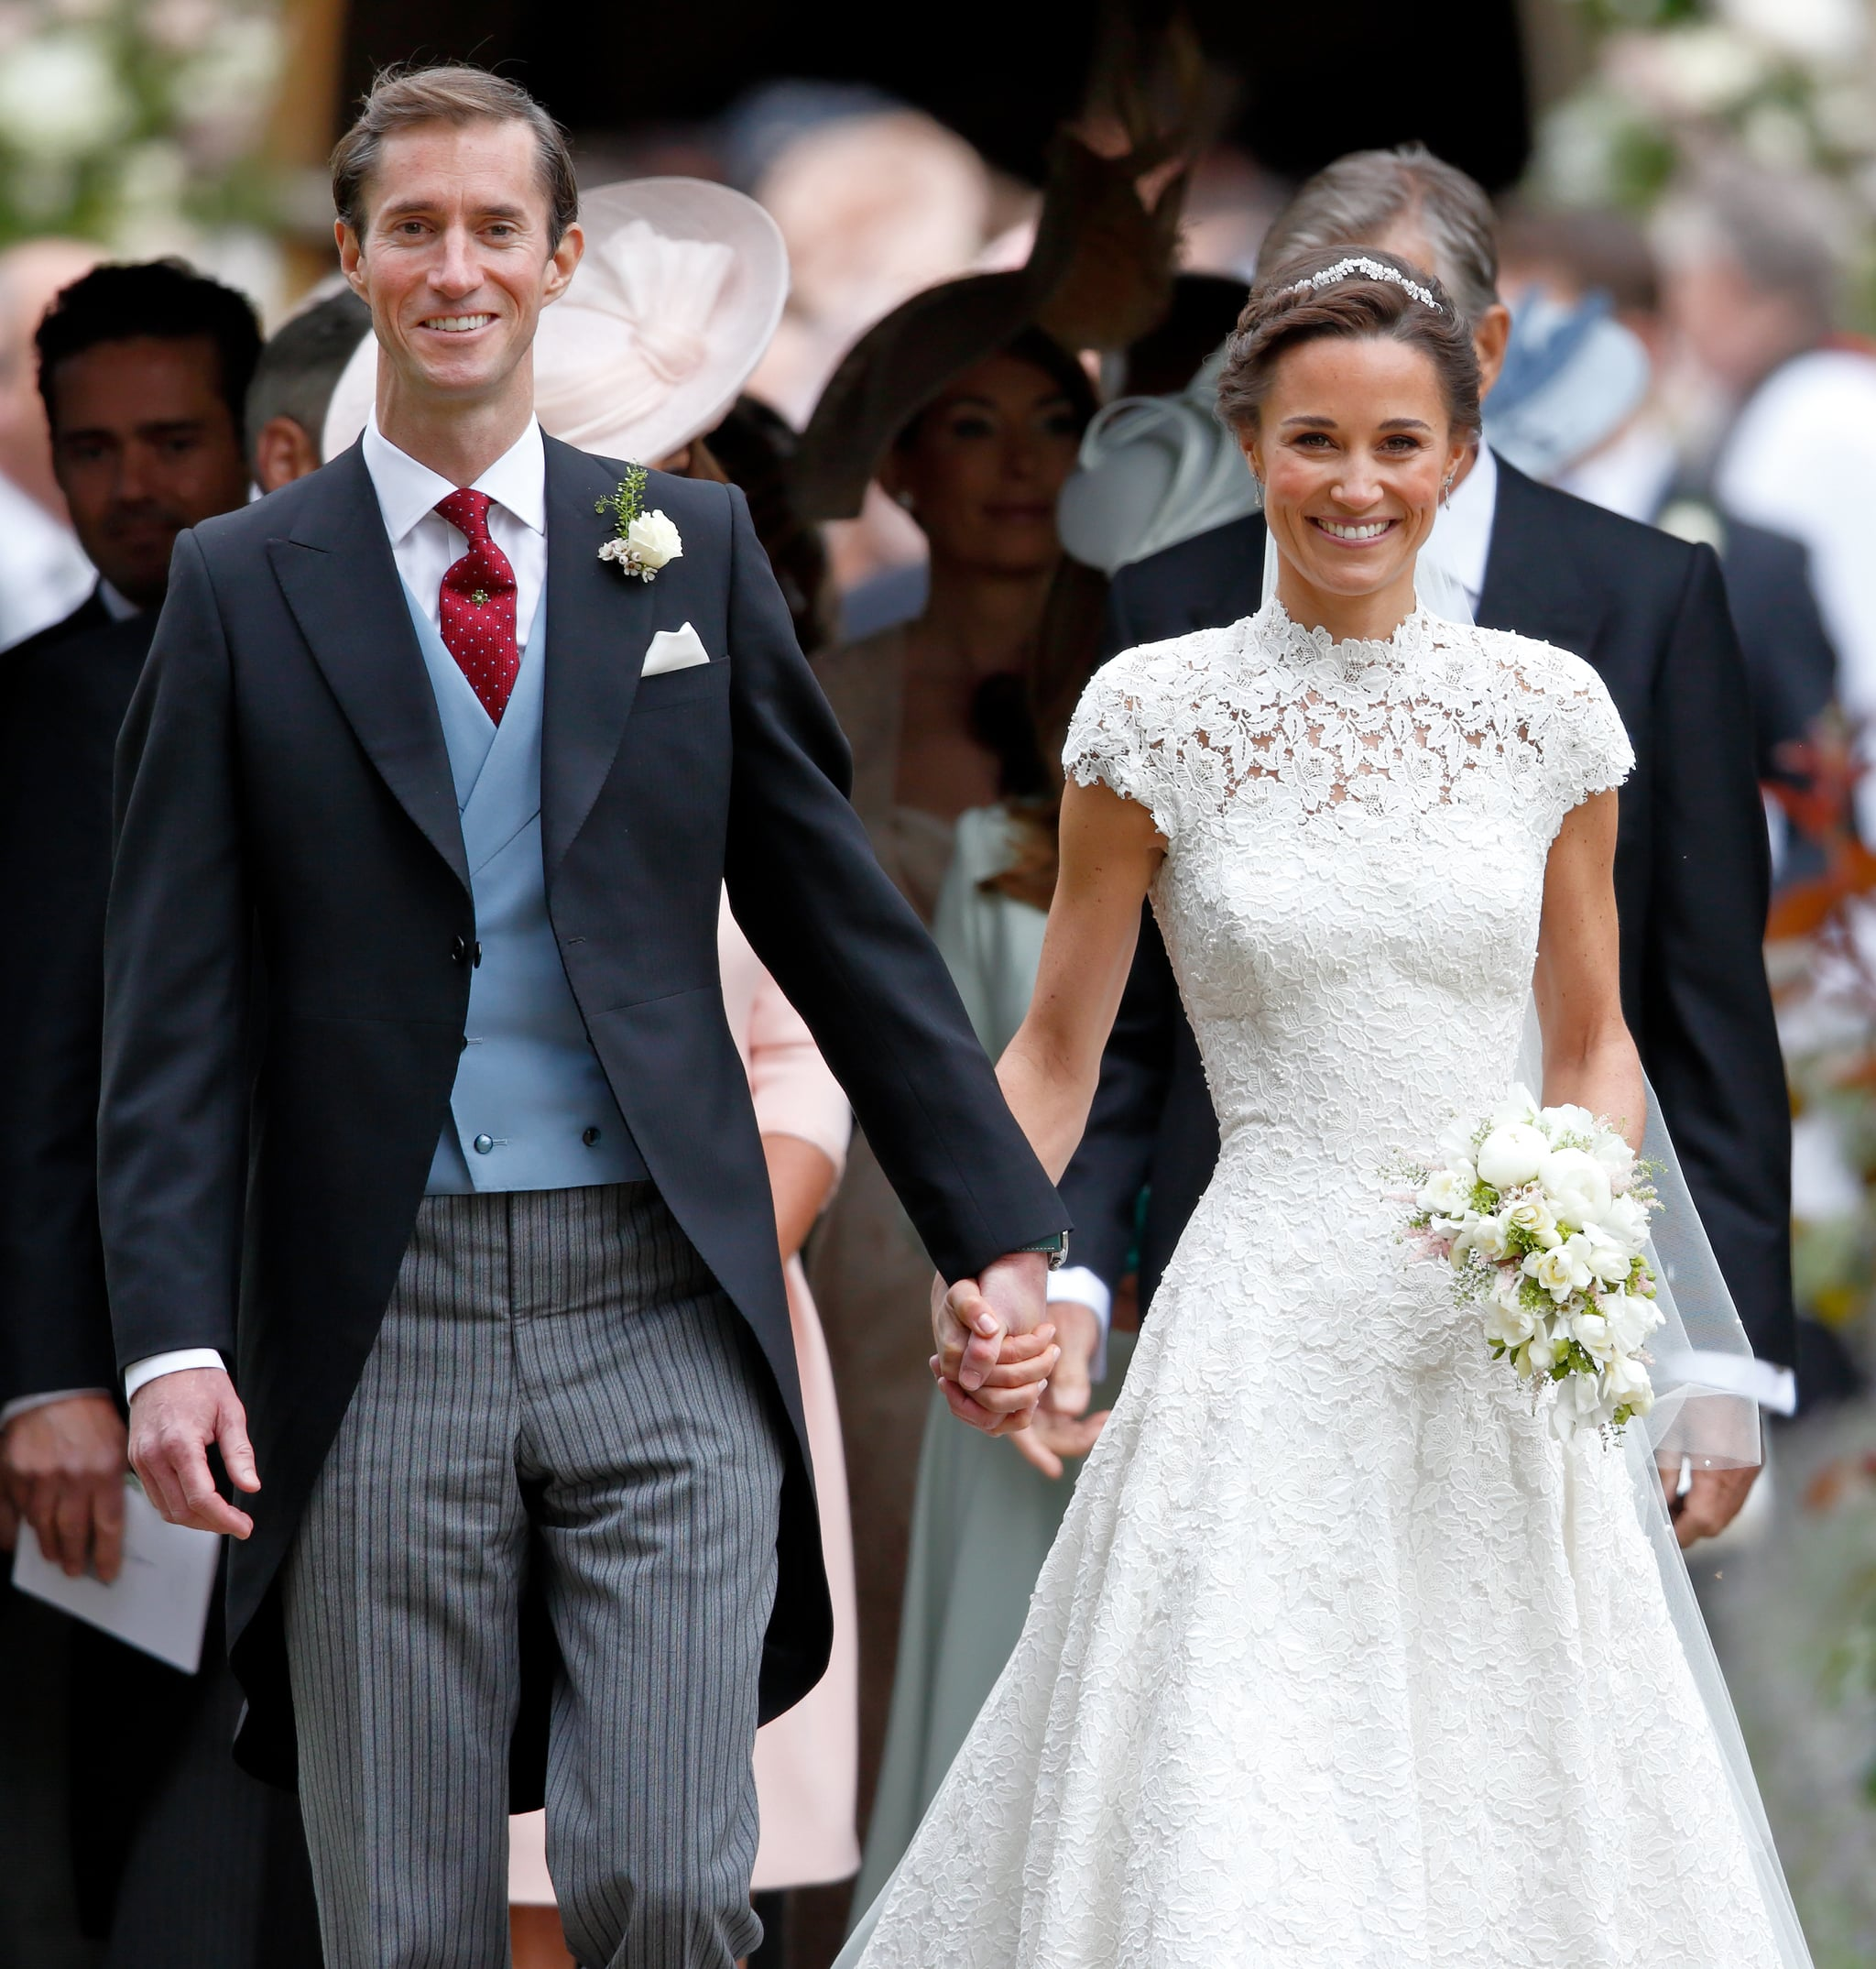 Pippa Middleton's Wedding Earrings: Recycles Royal Wedding Jewelry For 'Something Old'